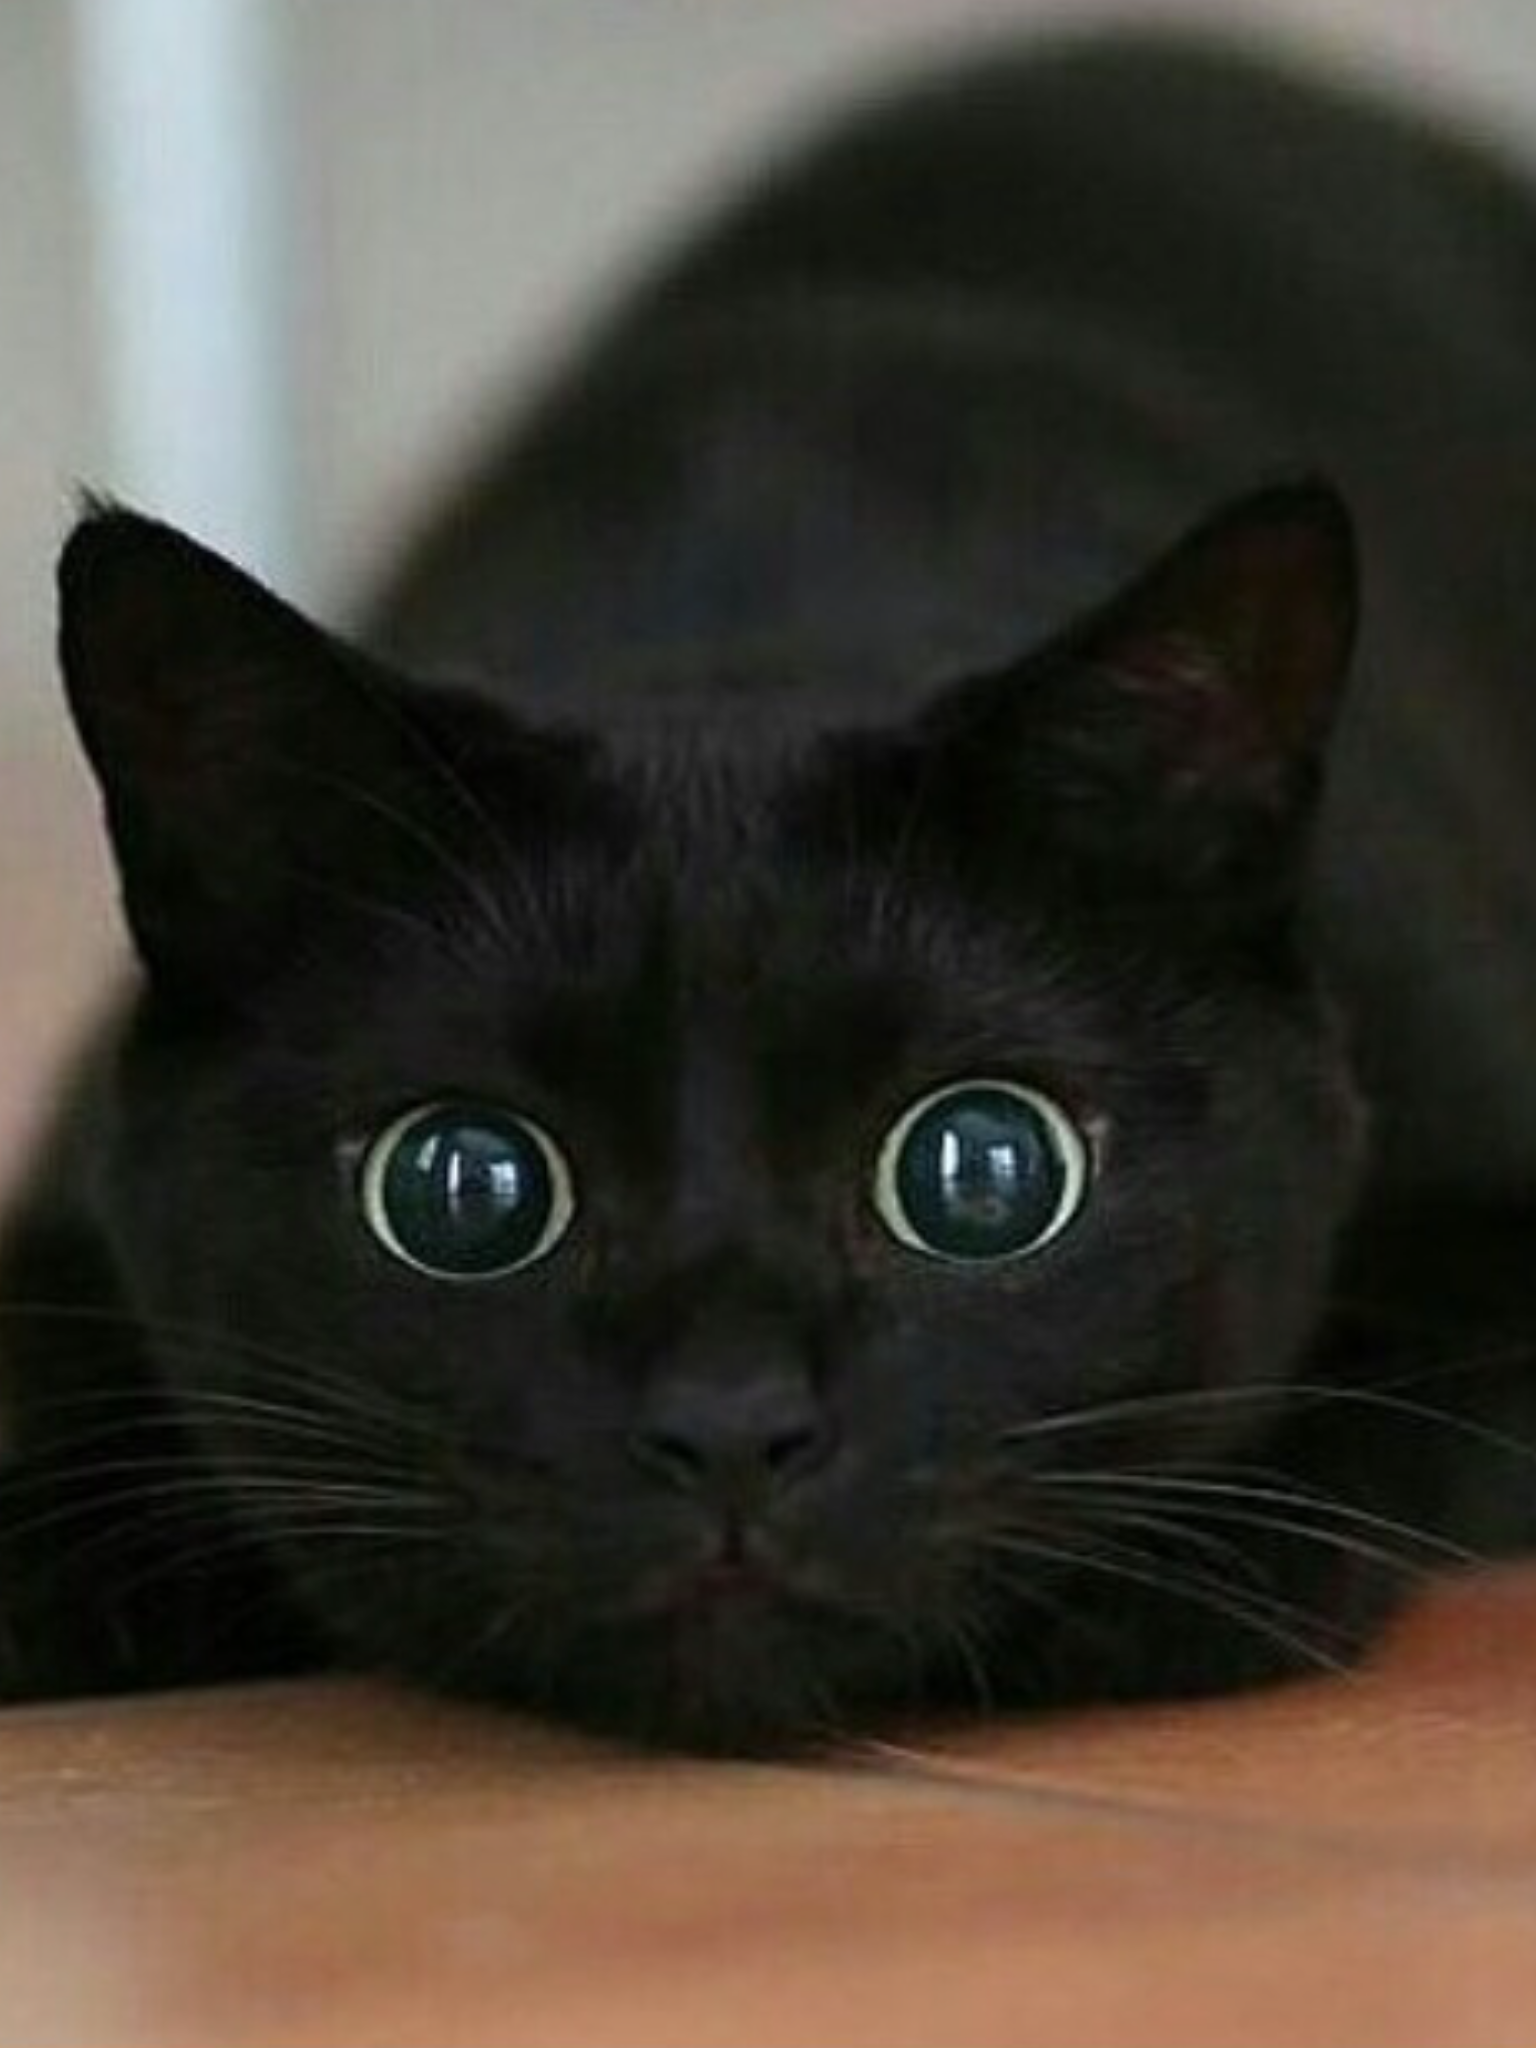 Crazy eyes activated.......IF MY KITTY STARED AT ME LIKE